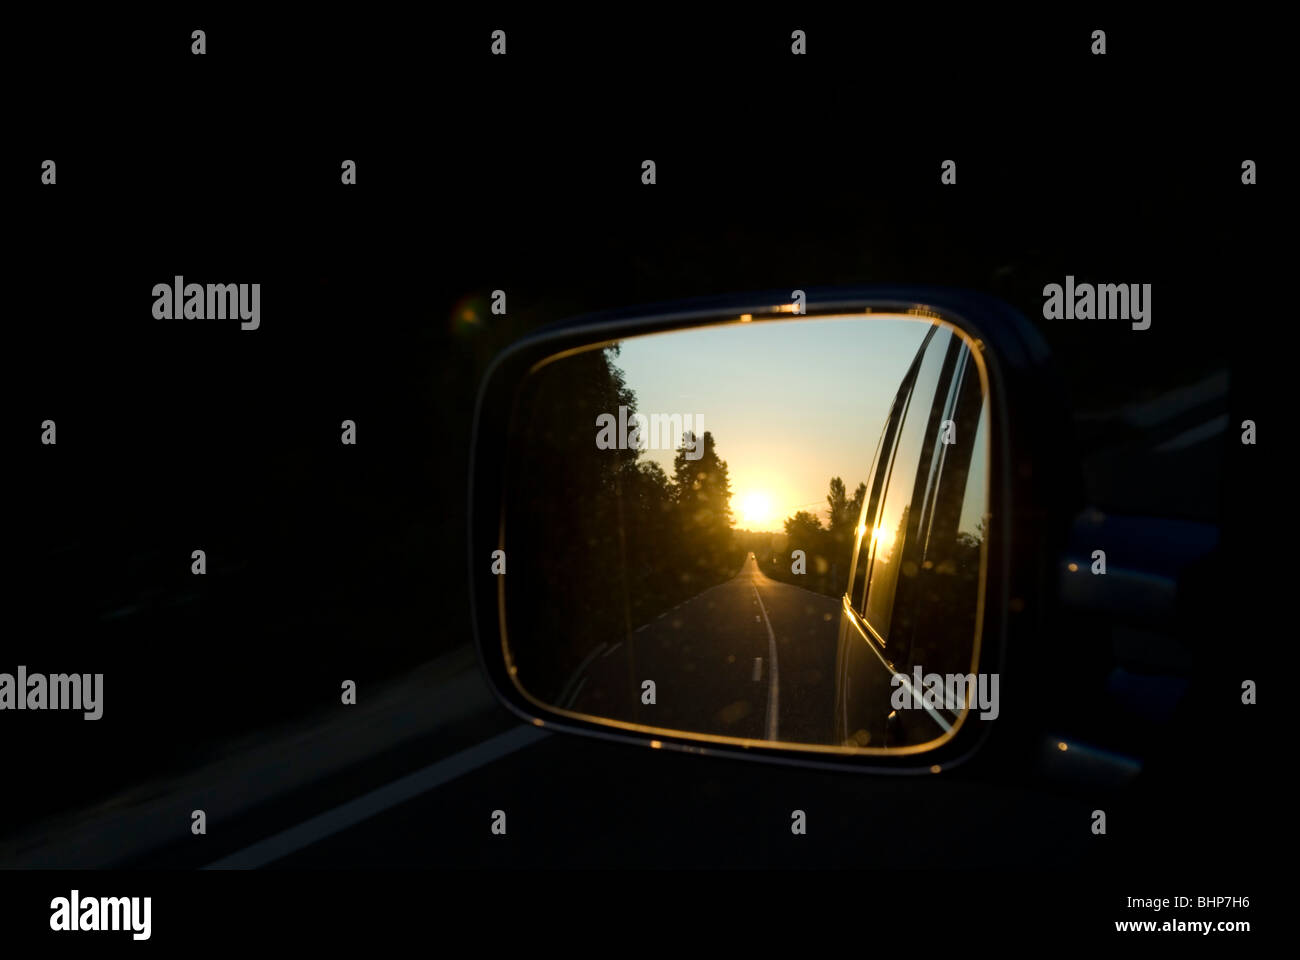 a rear wing mirror shows the view of landscape of passing road at sunset disappearing behind moving car - Stock Image